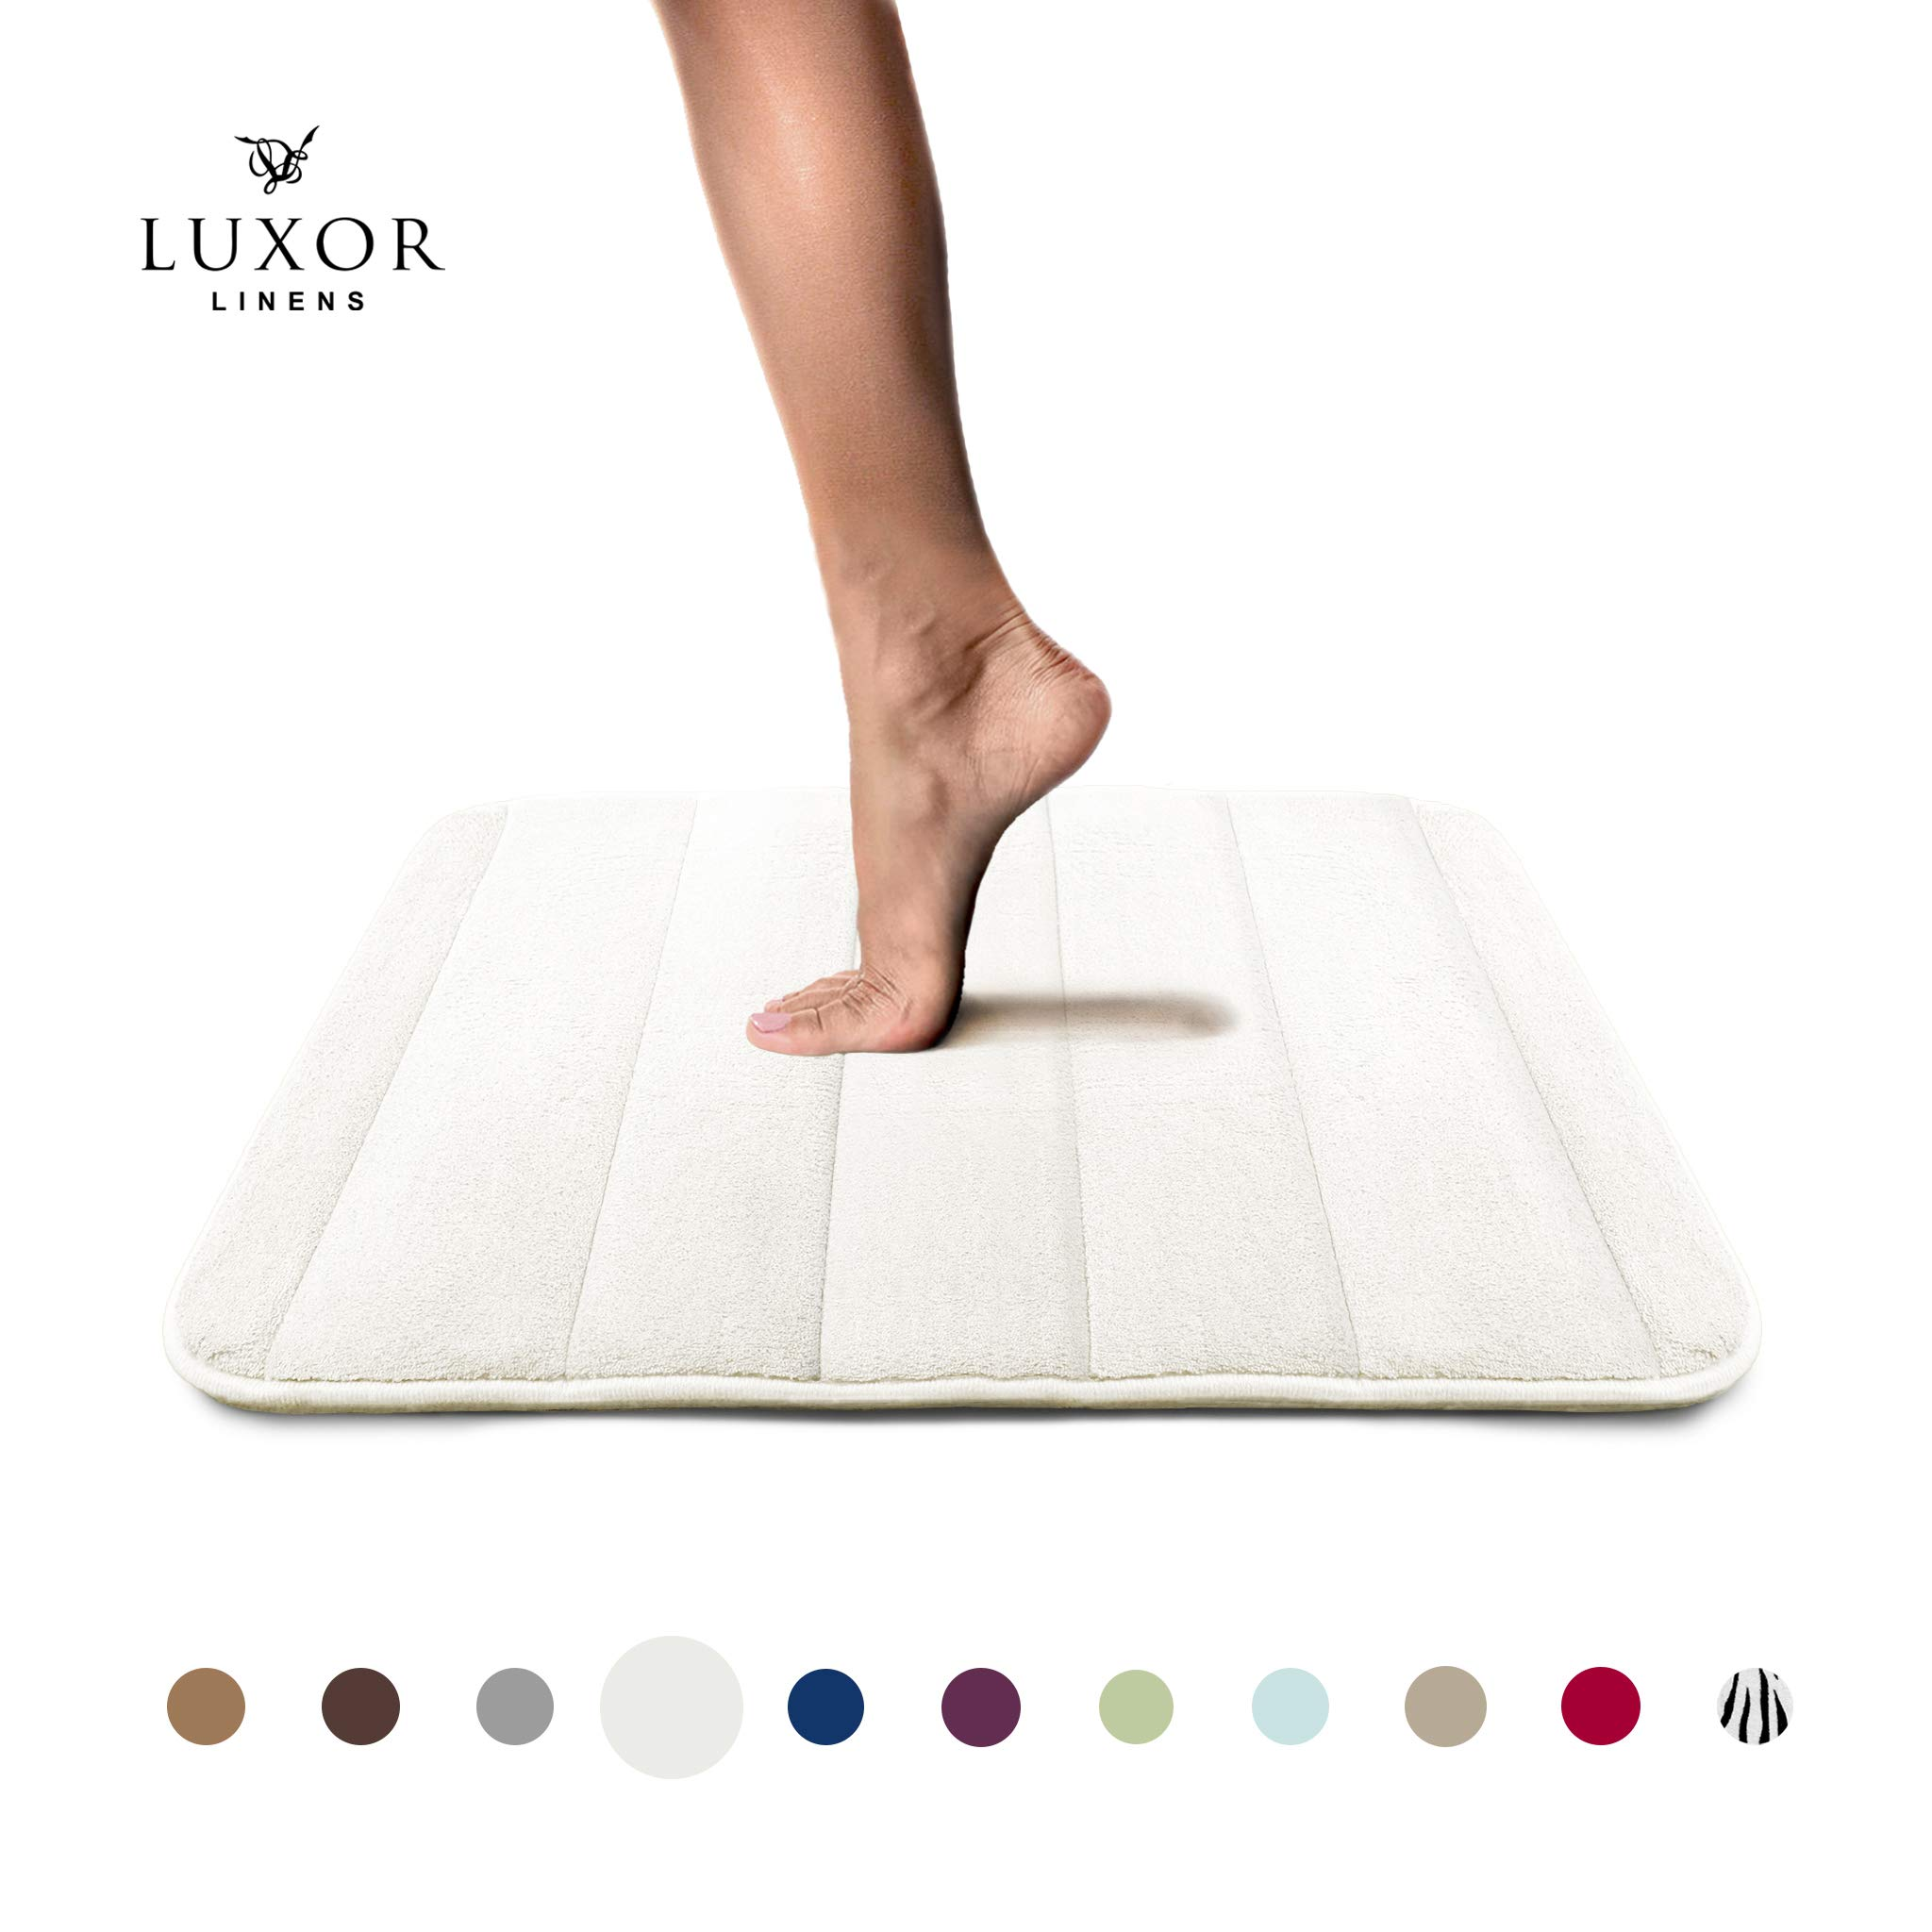 Luxor Linens - Memory Foam Bath Mat (17 x 25 inch) - Giovanni Line - Luxurious, Super Soft & Absorbent with Anti-Slip Backing - Available in a Wide Variety of Colors (One Bath Mat, Ivory)